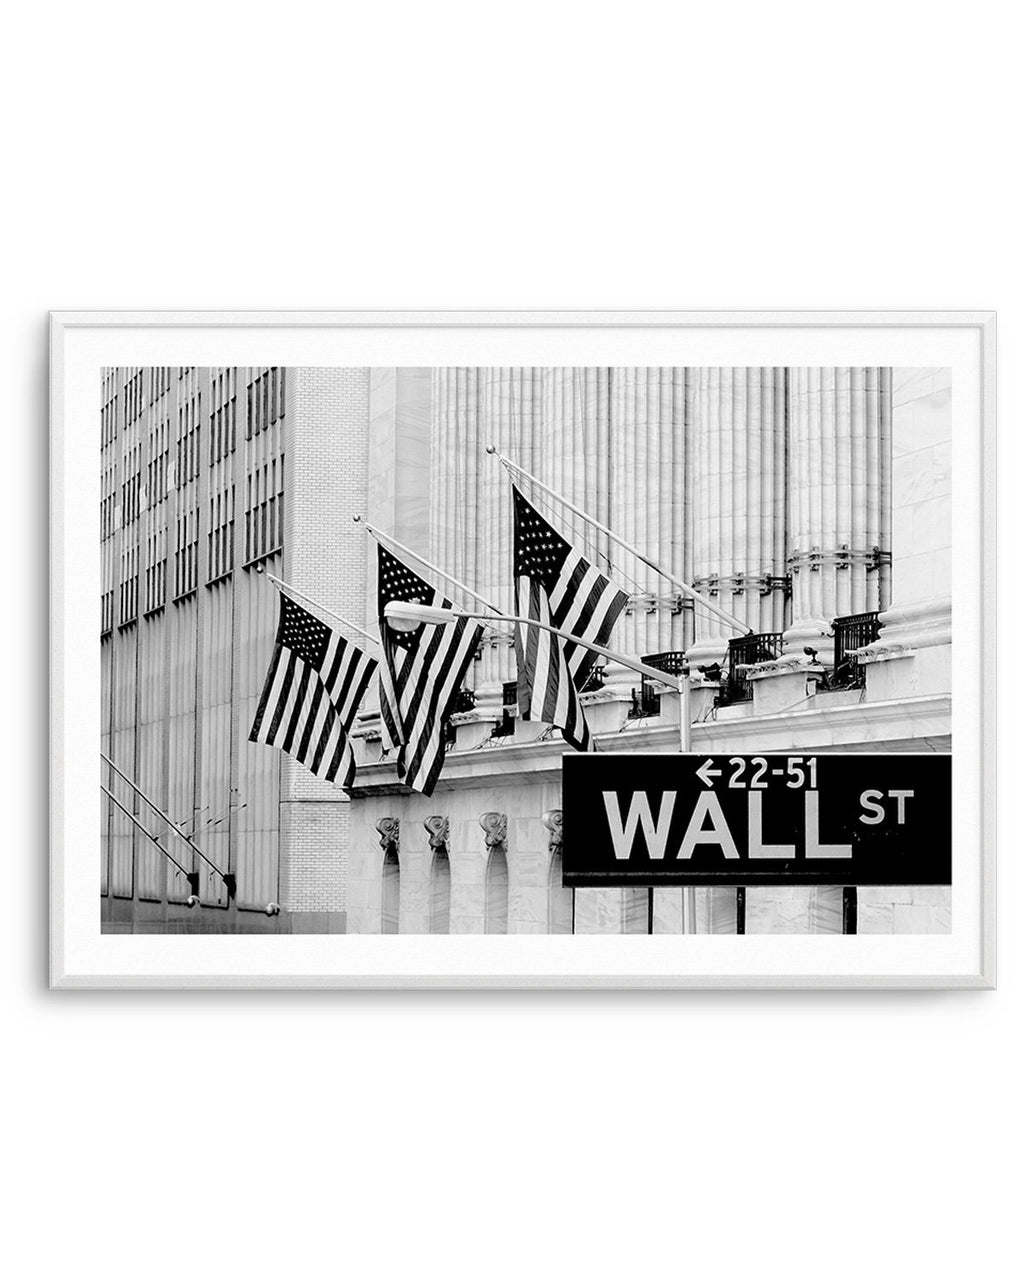 Wall Street Sign - Olive et Oriel